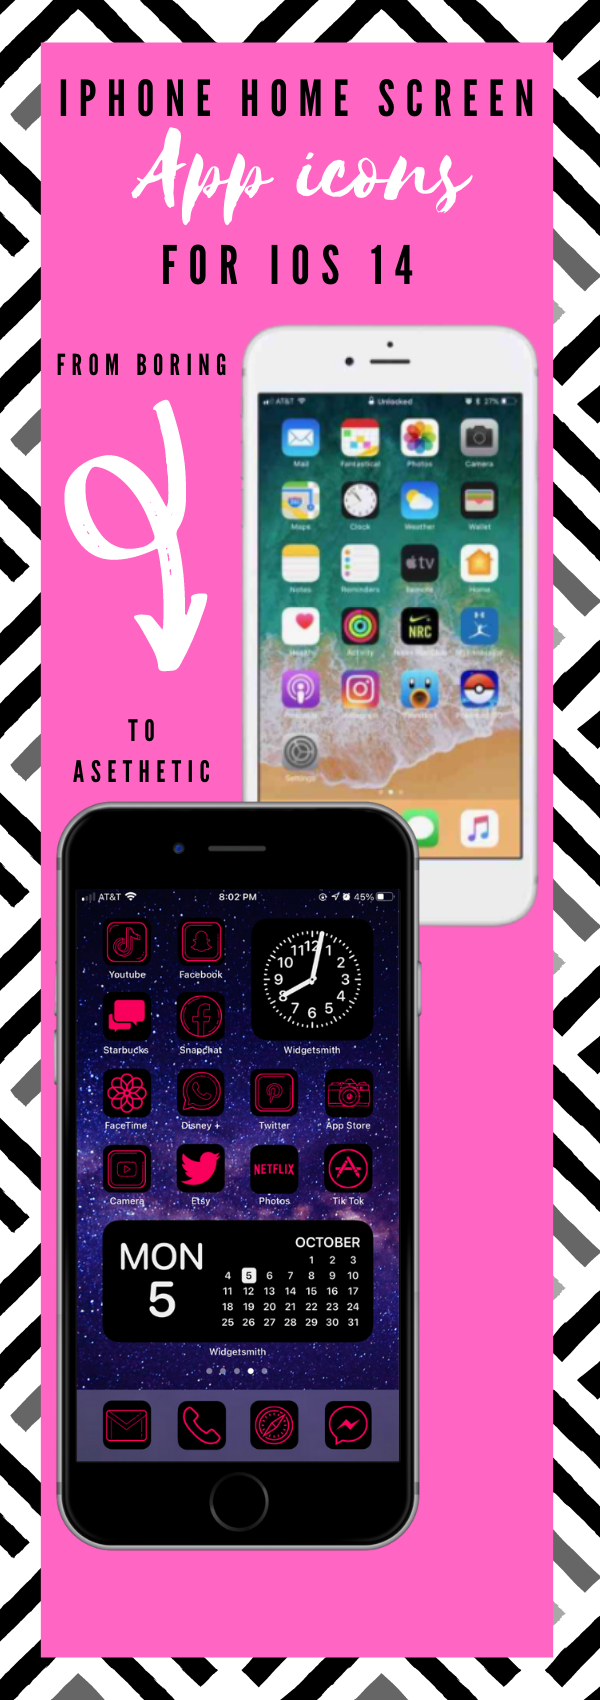 Neon pink app icons aesthetic to customize home screen!